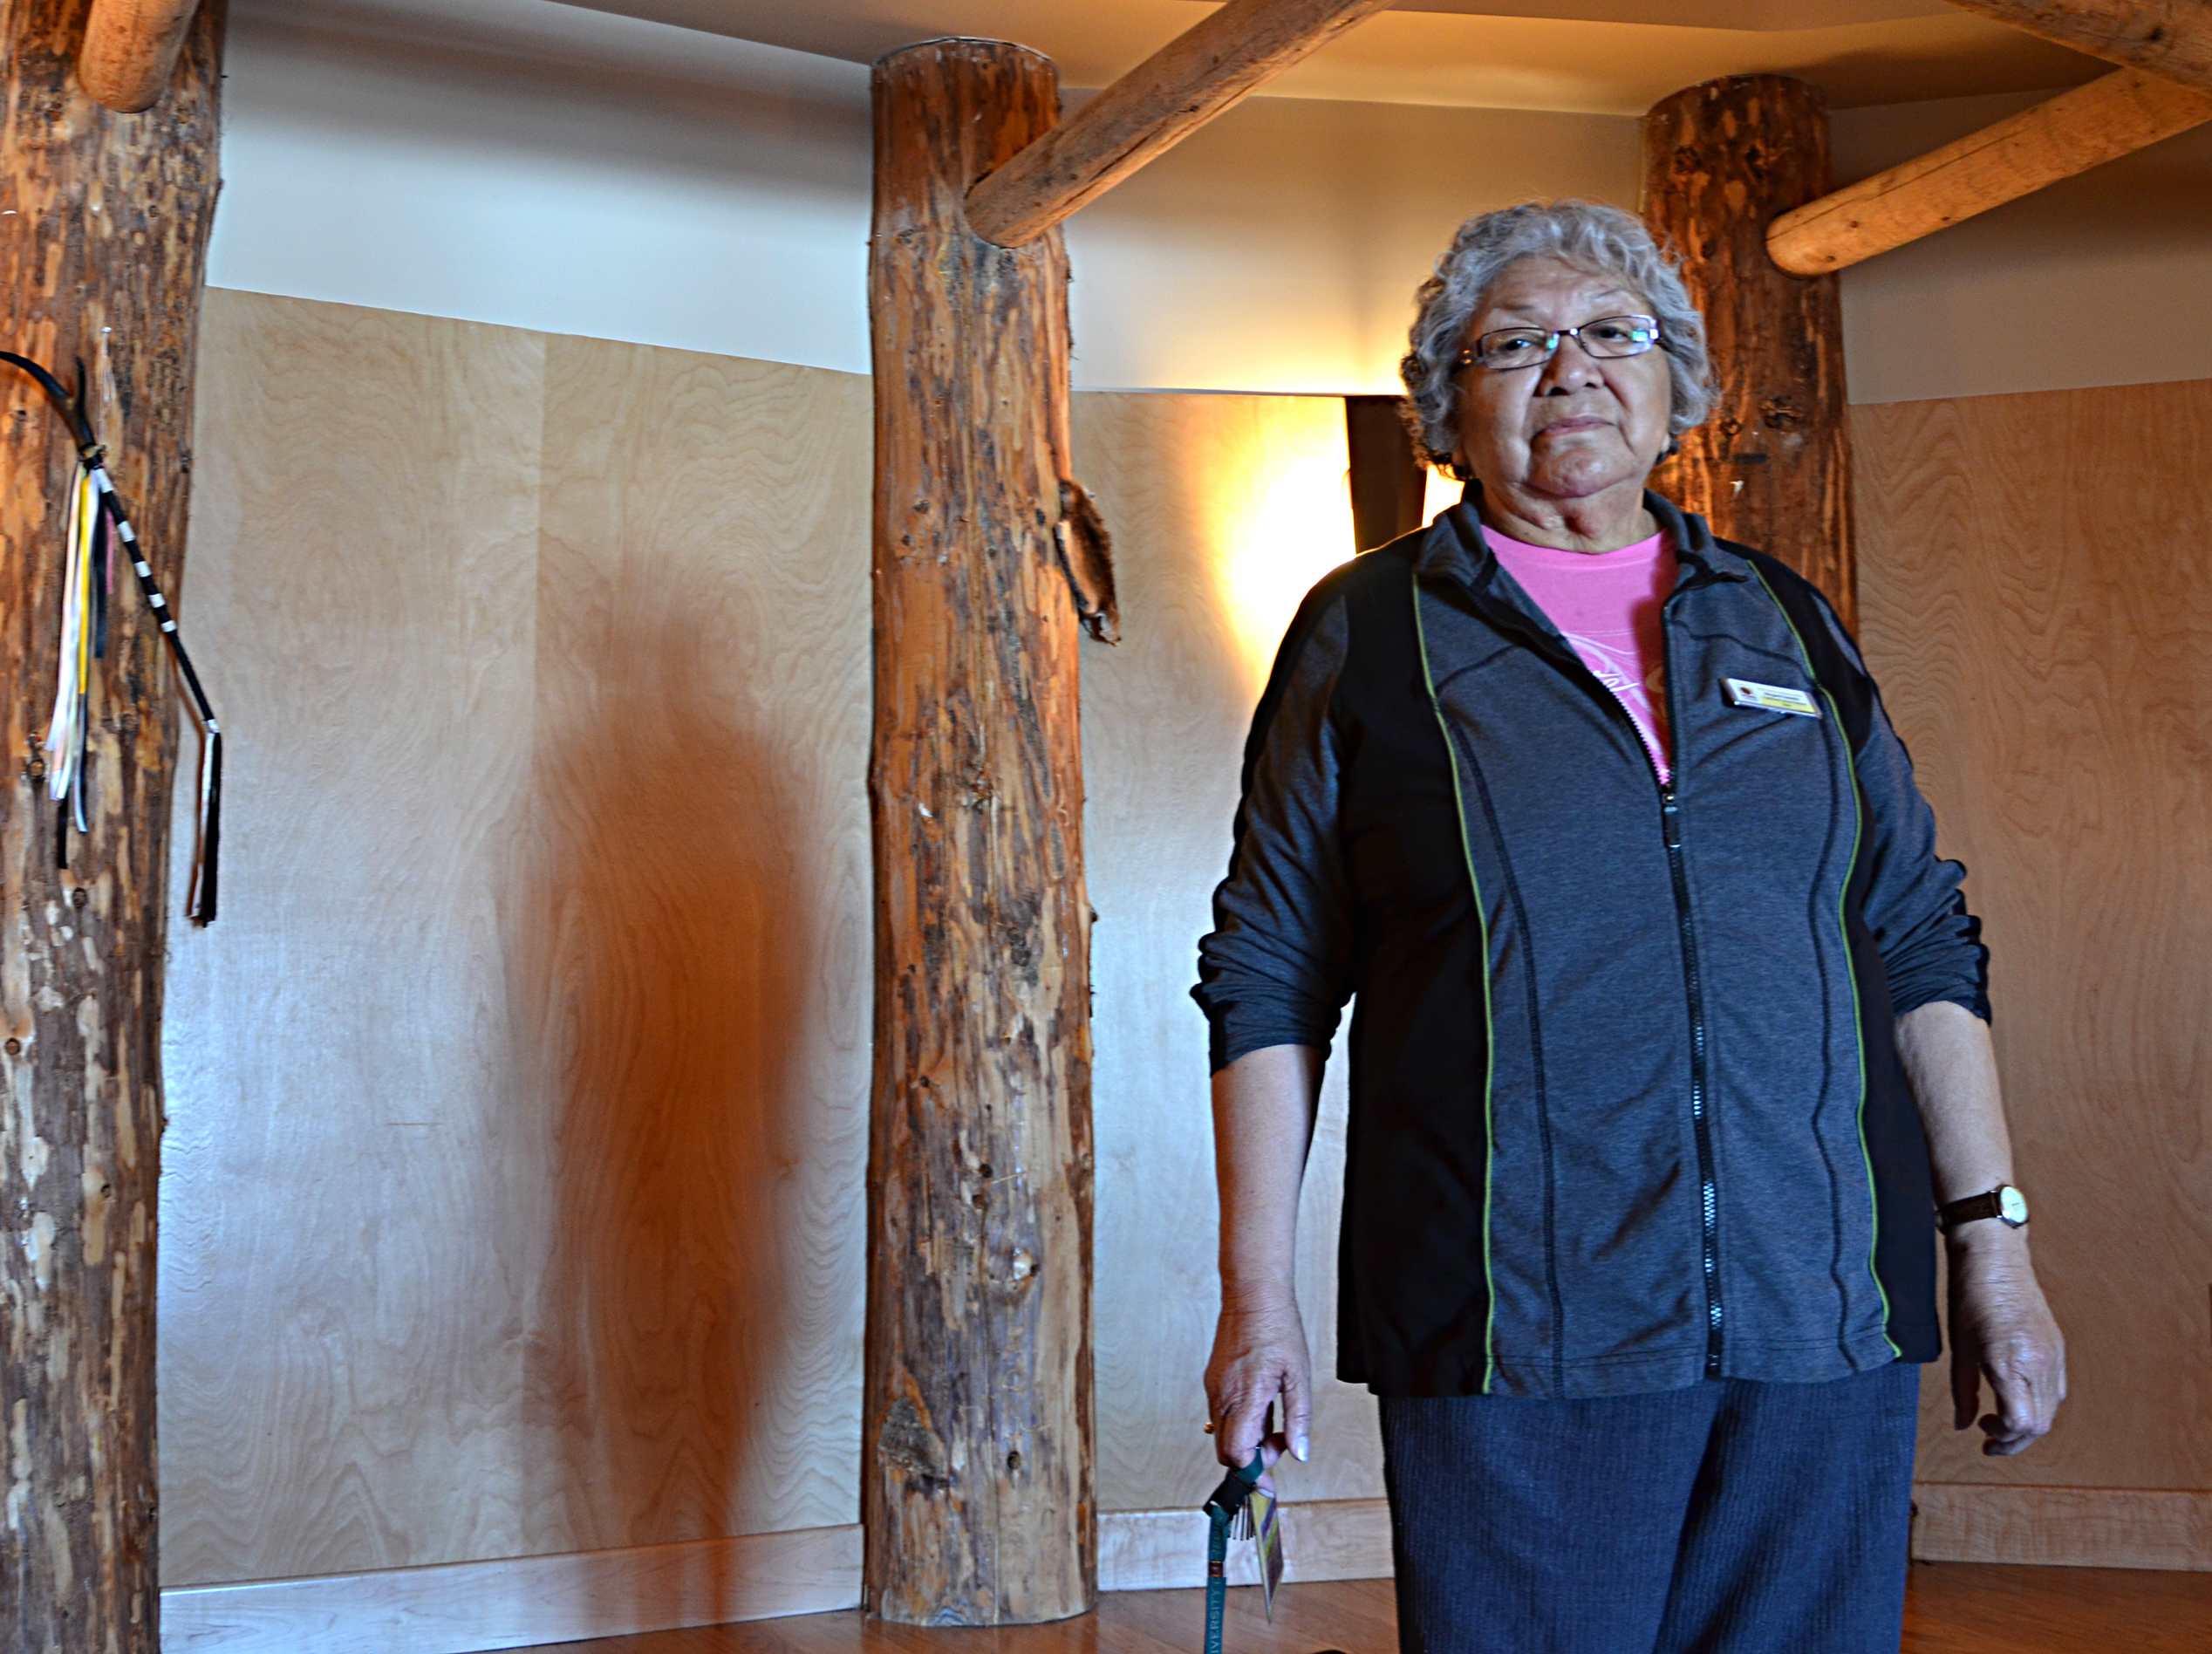 Elder Margart Keewatin stands in the ceremony room at the All Nations Healing Hospital in Fort Qu'Appelle. In this room, she performs traditional Cree ceremonies for patients and the surrounding community. Photo by Aaron Stuckel